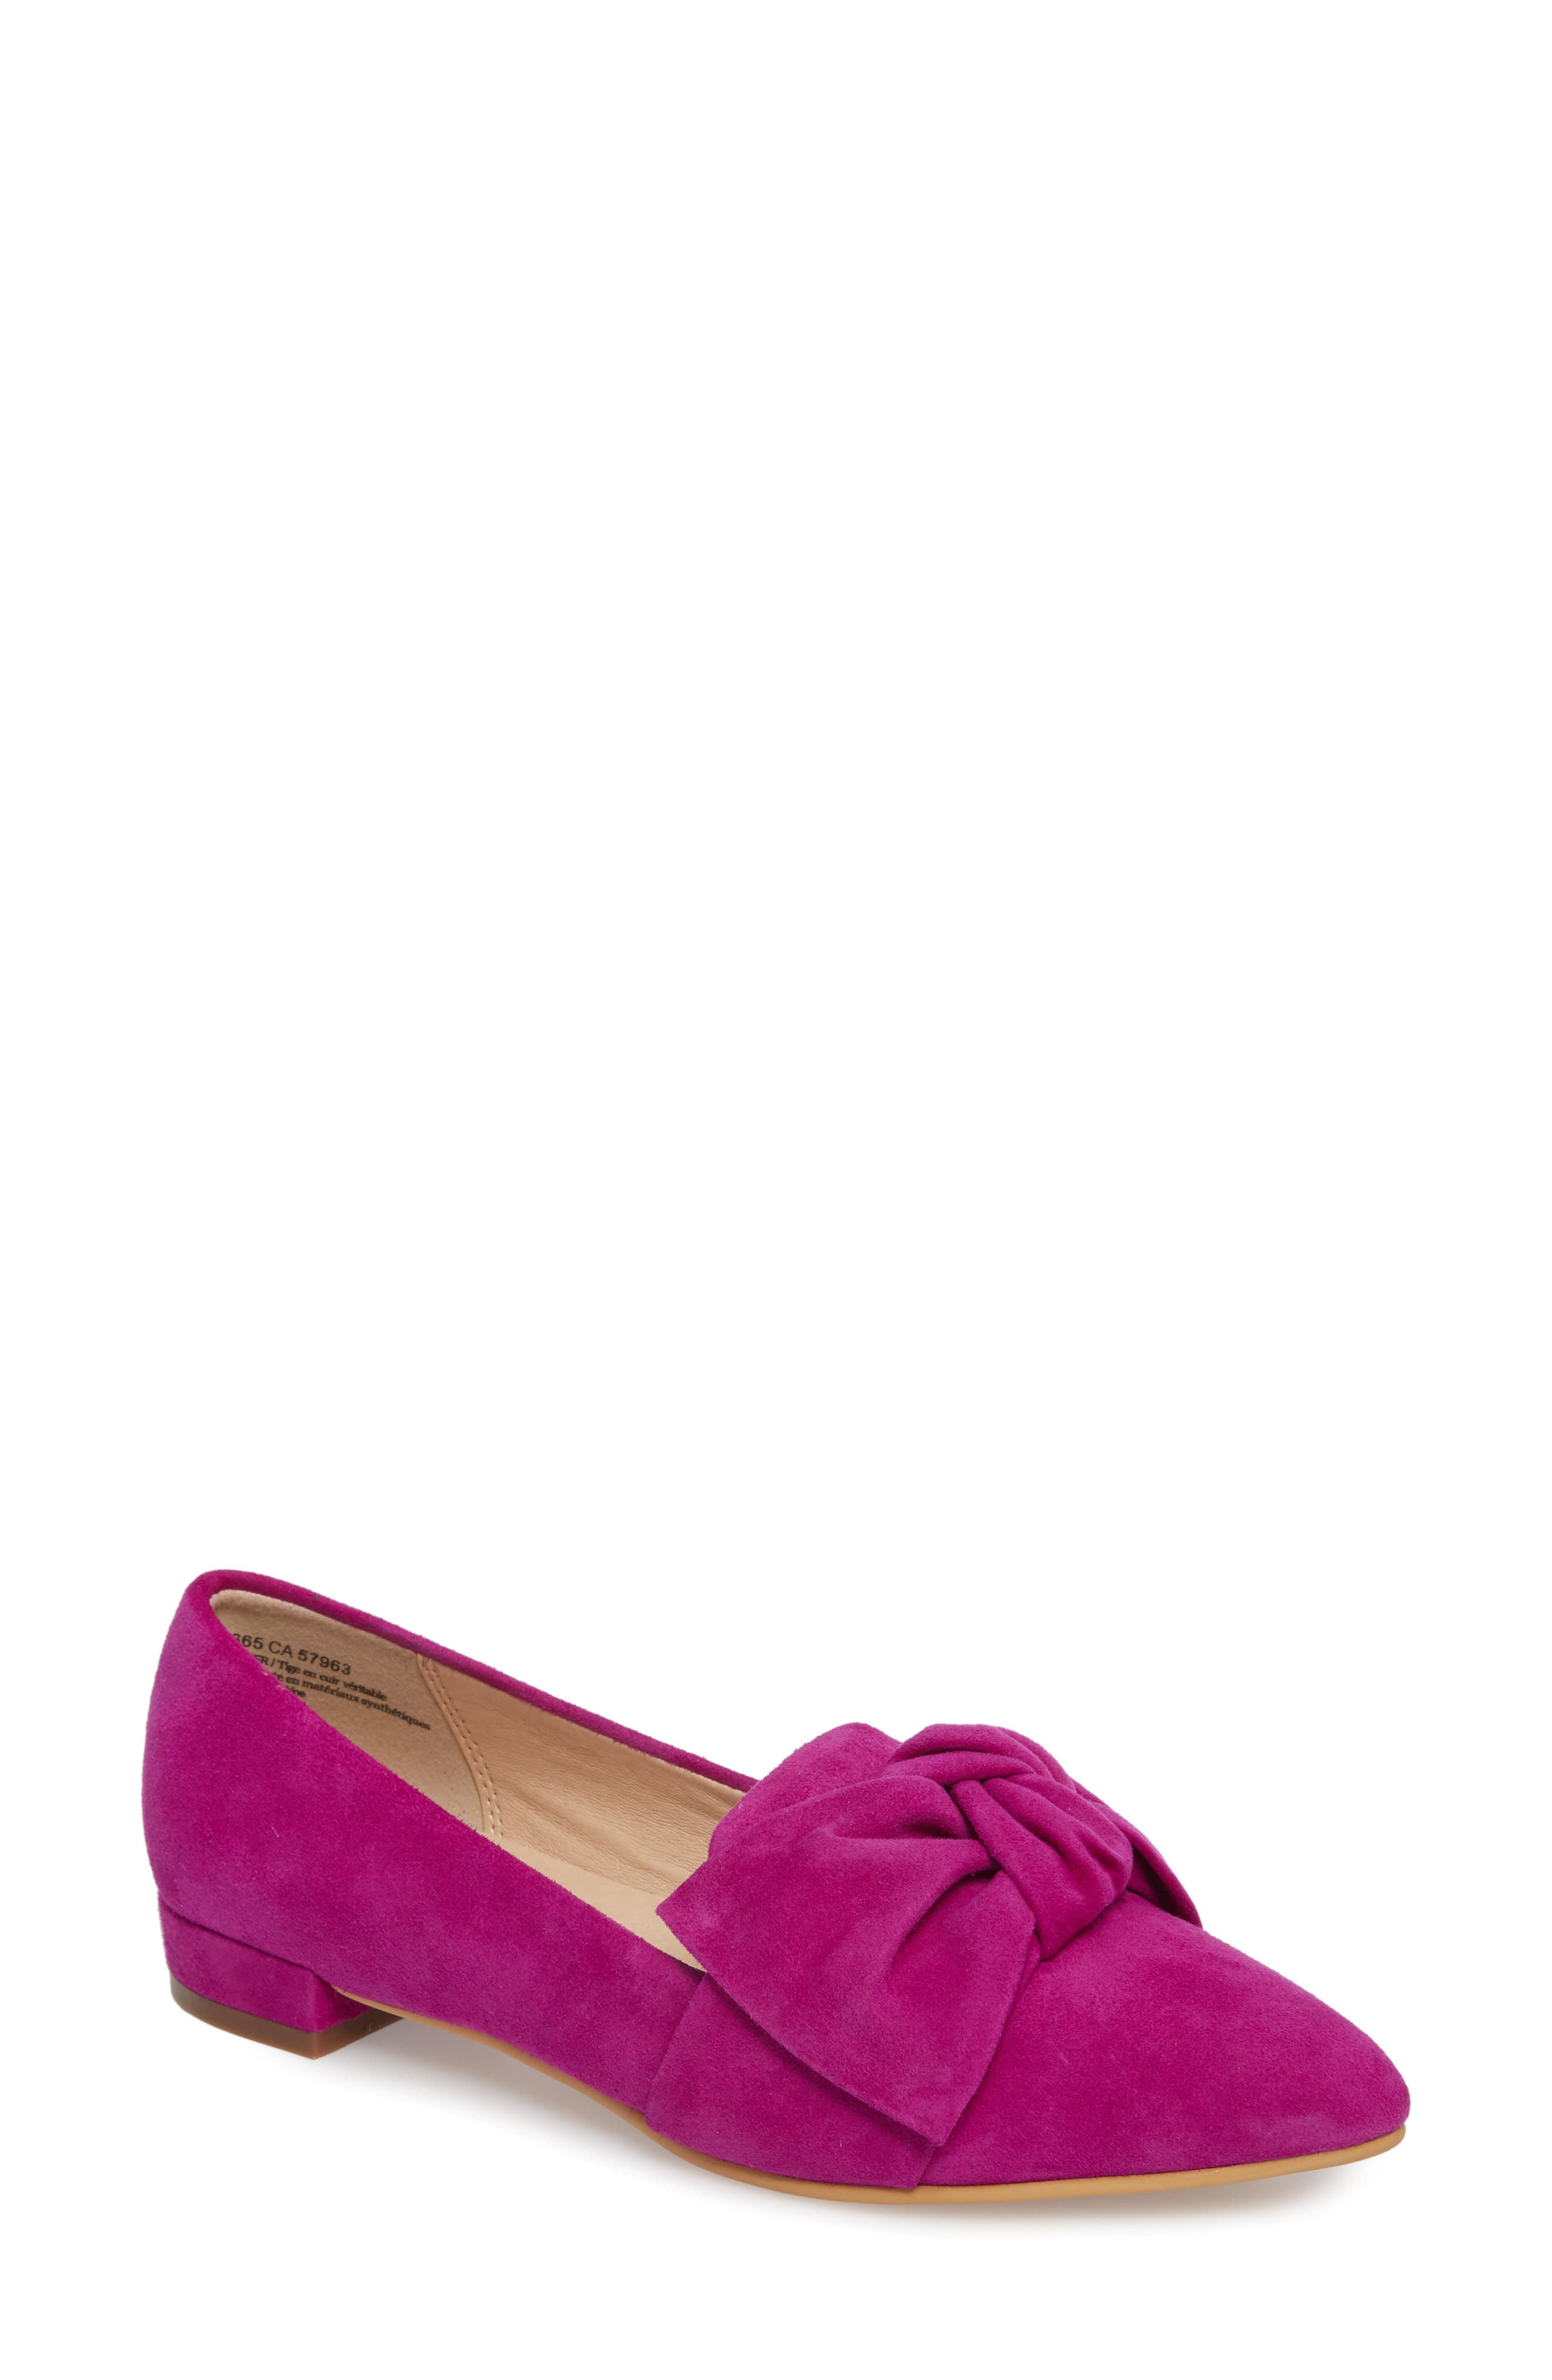 Main Image - BP. Kari Bow Loafer (Women)